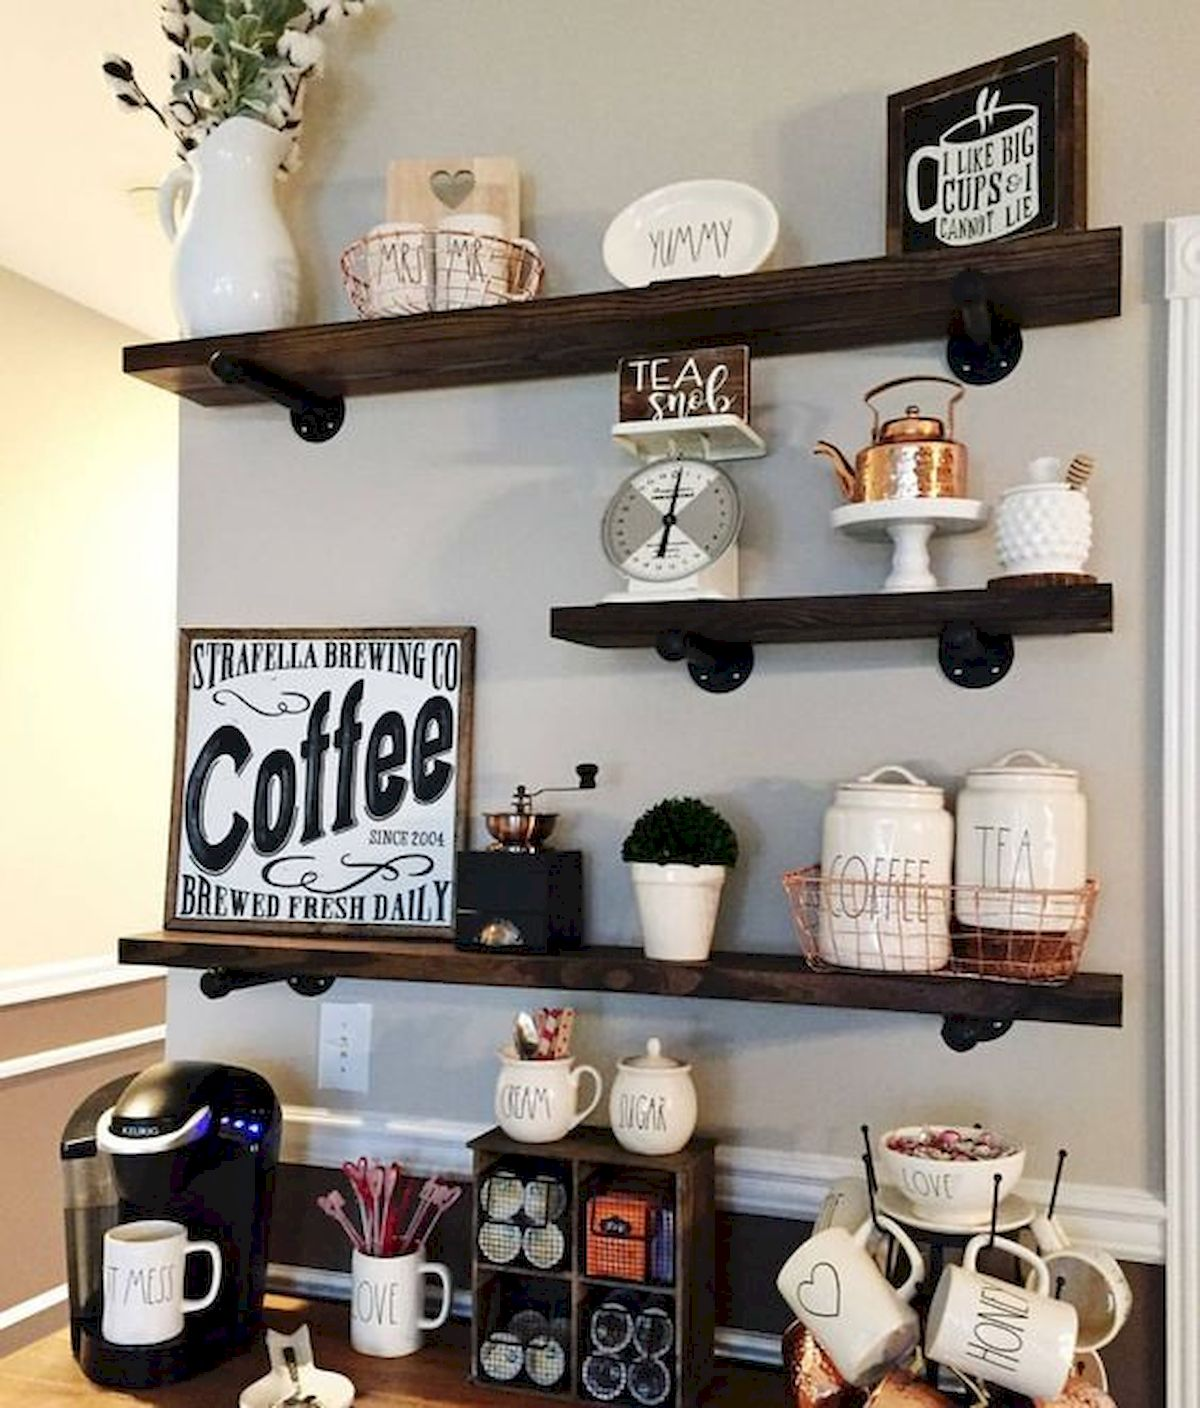 Home Coffee Bar Design Ideas: 60 Amazing Mini Coffee Bar Ideas For Your Home (48)